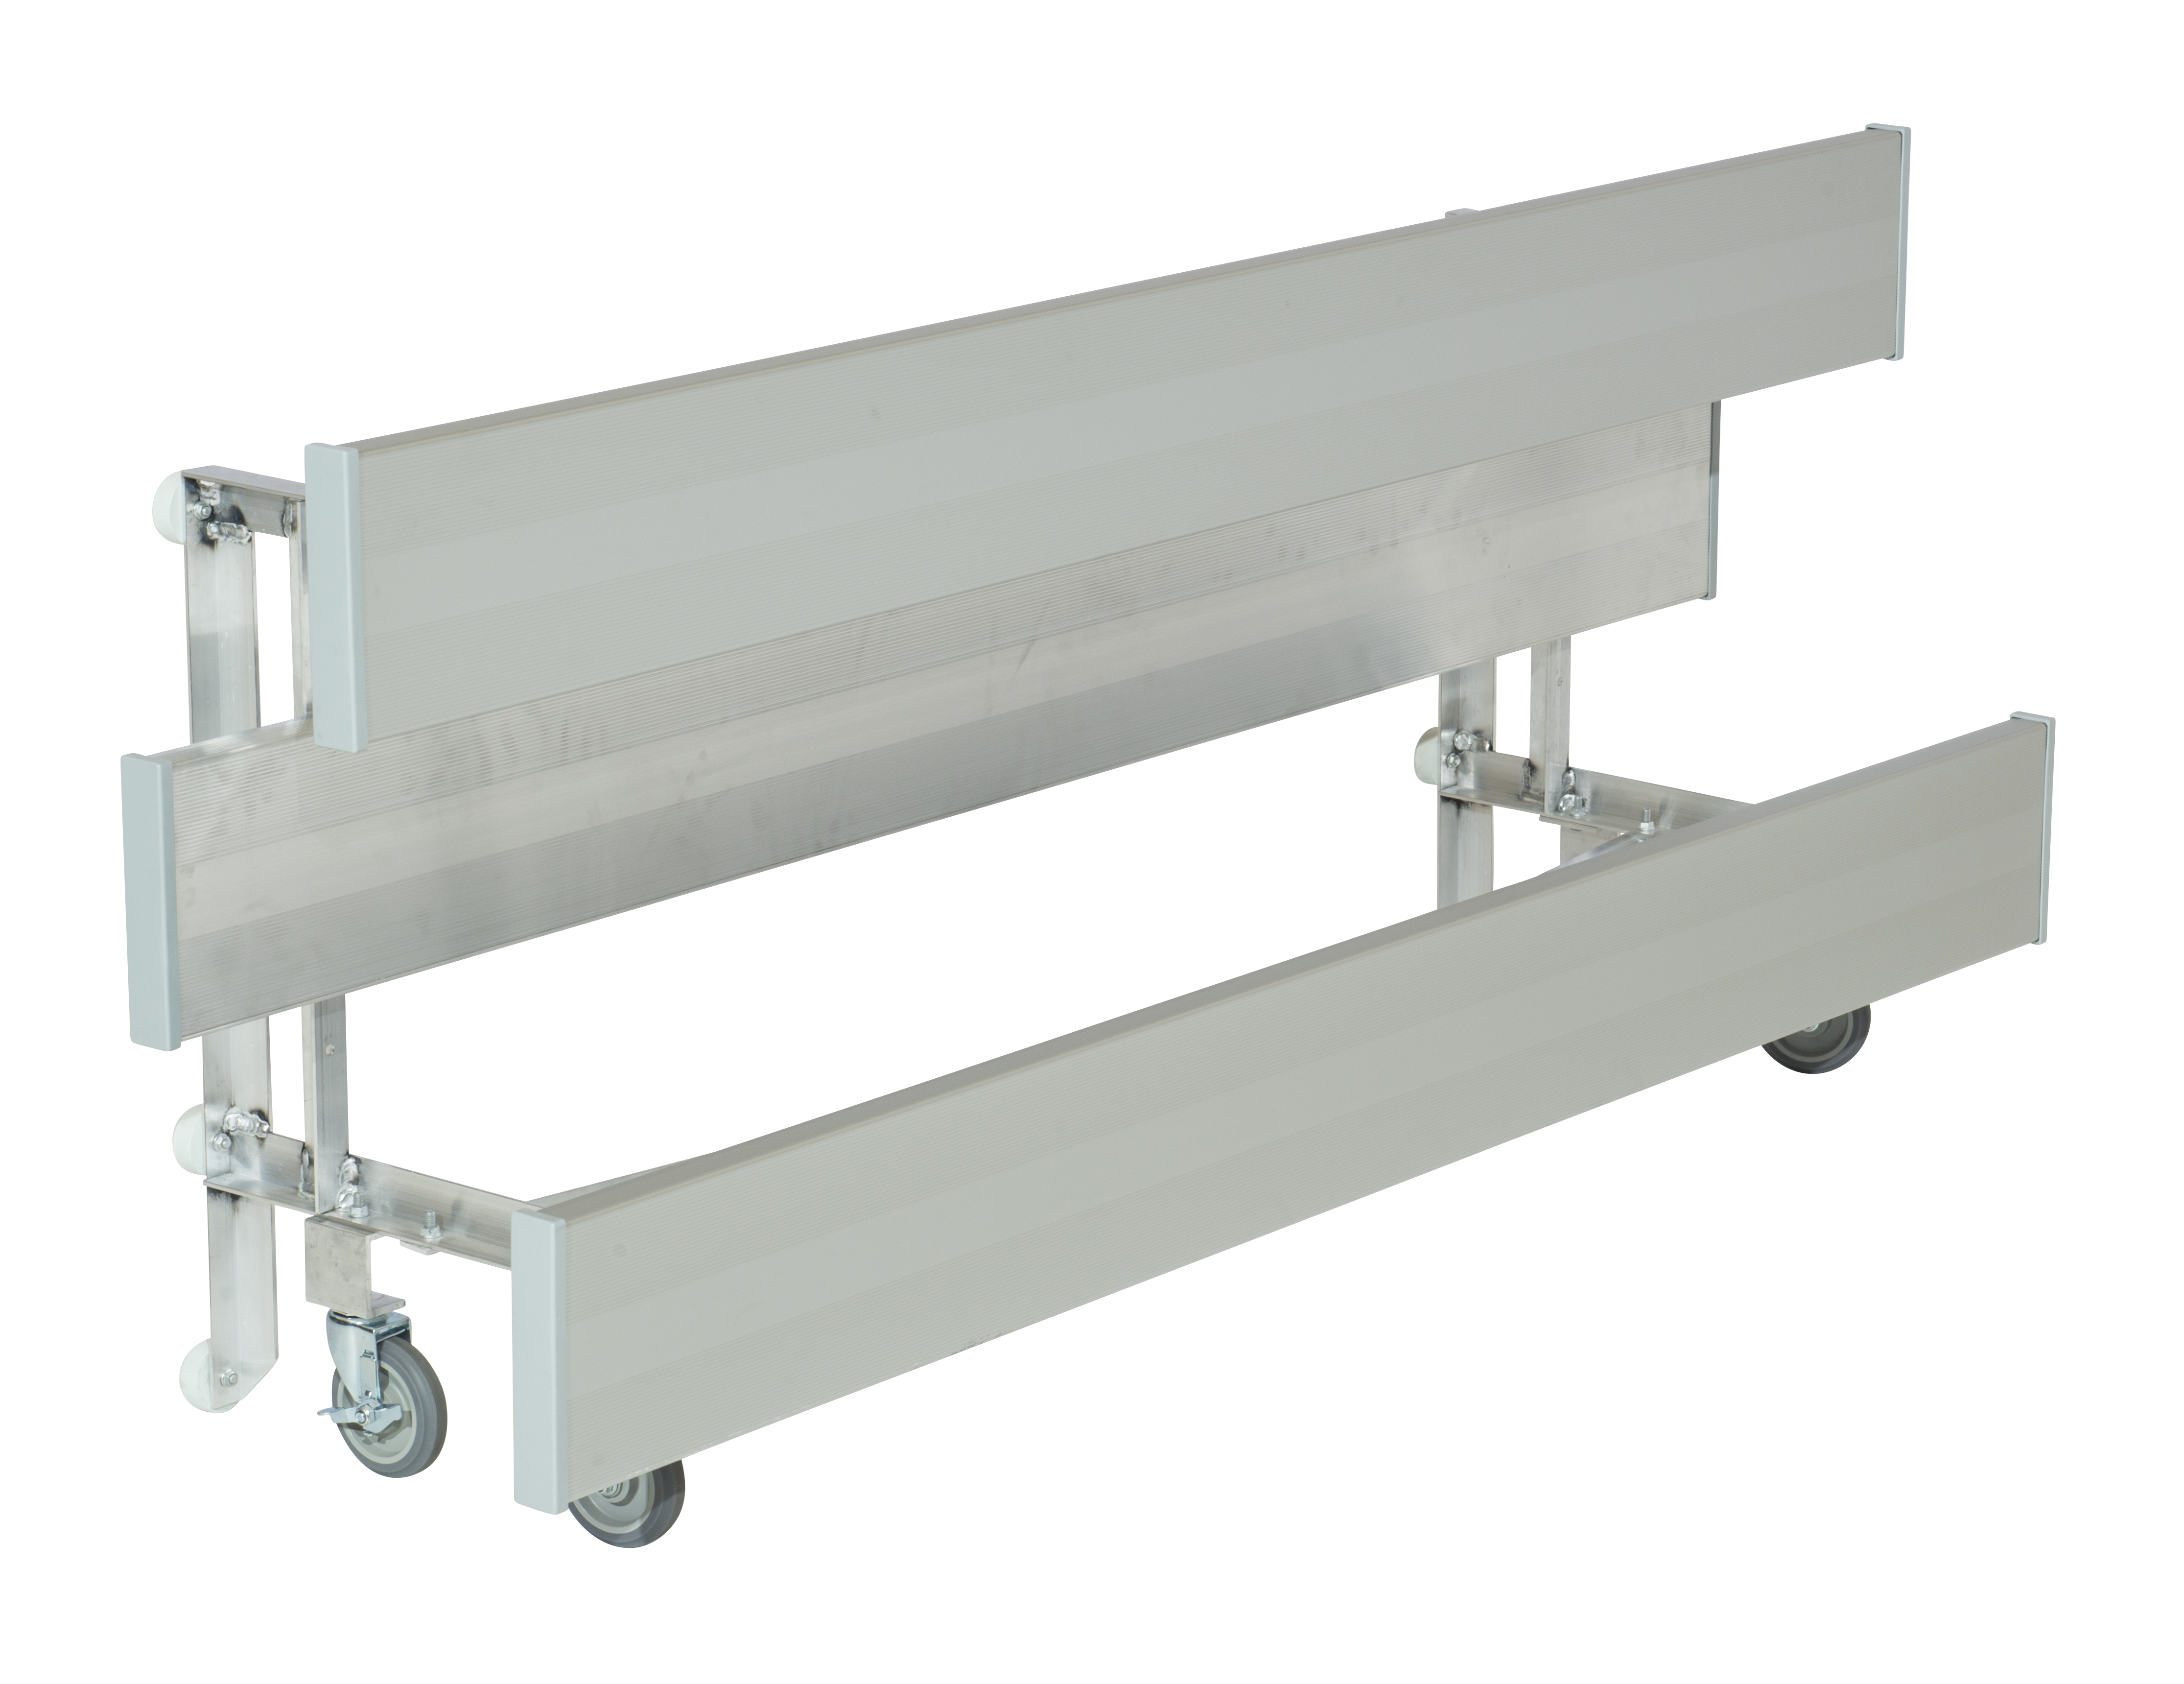 NR Series Models are available in many variations, Some models can be ordered with Tip and Roll Kits, Pictures can represent various available models in series, Double and single footboard options